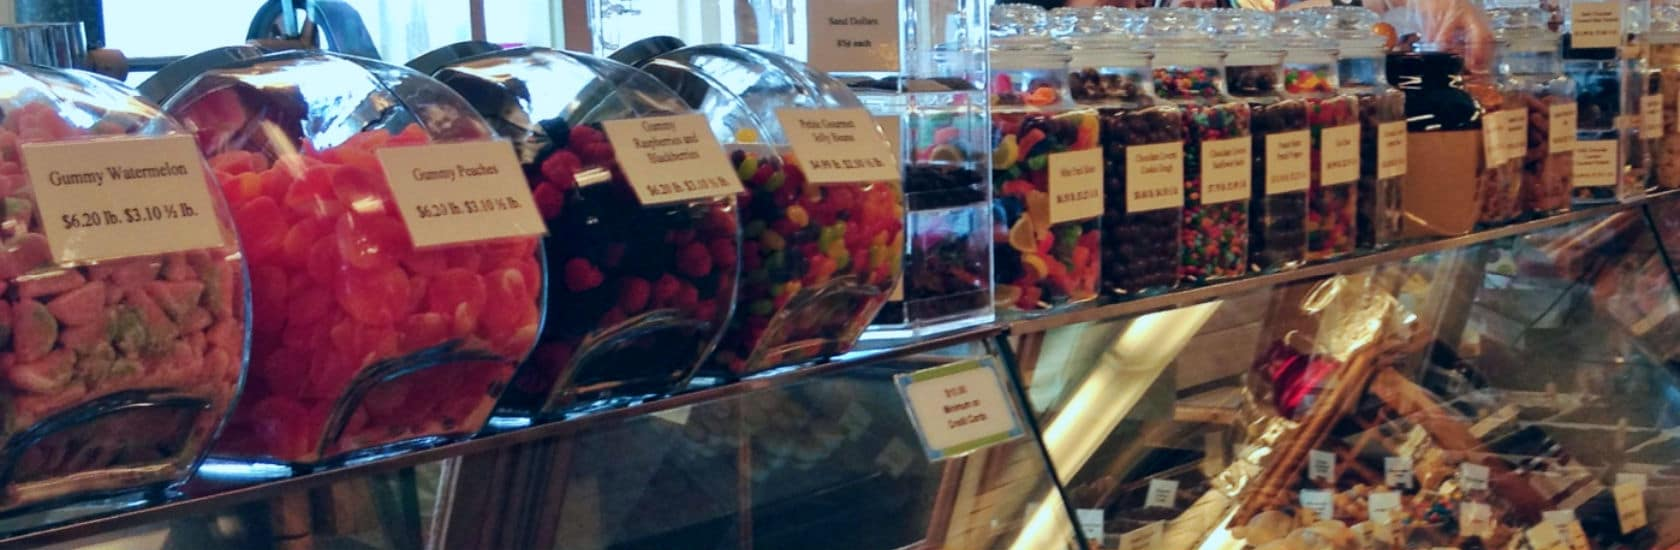 candy counter 3